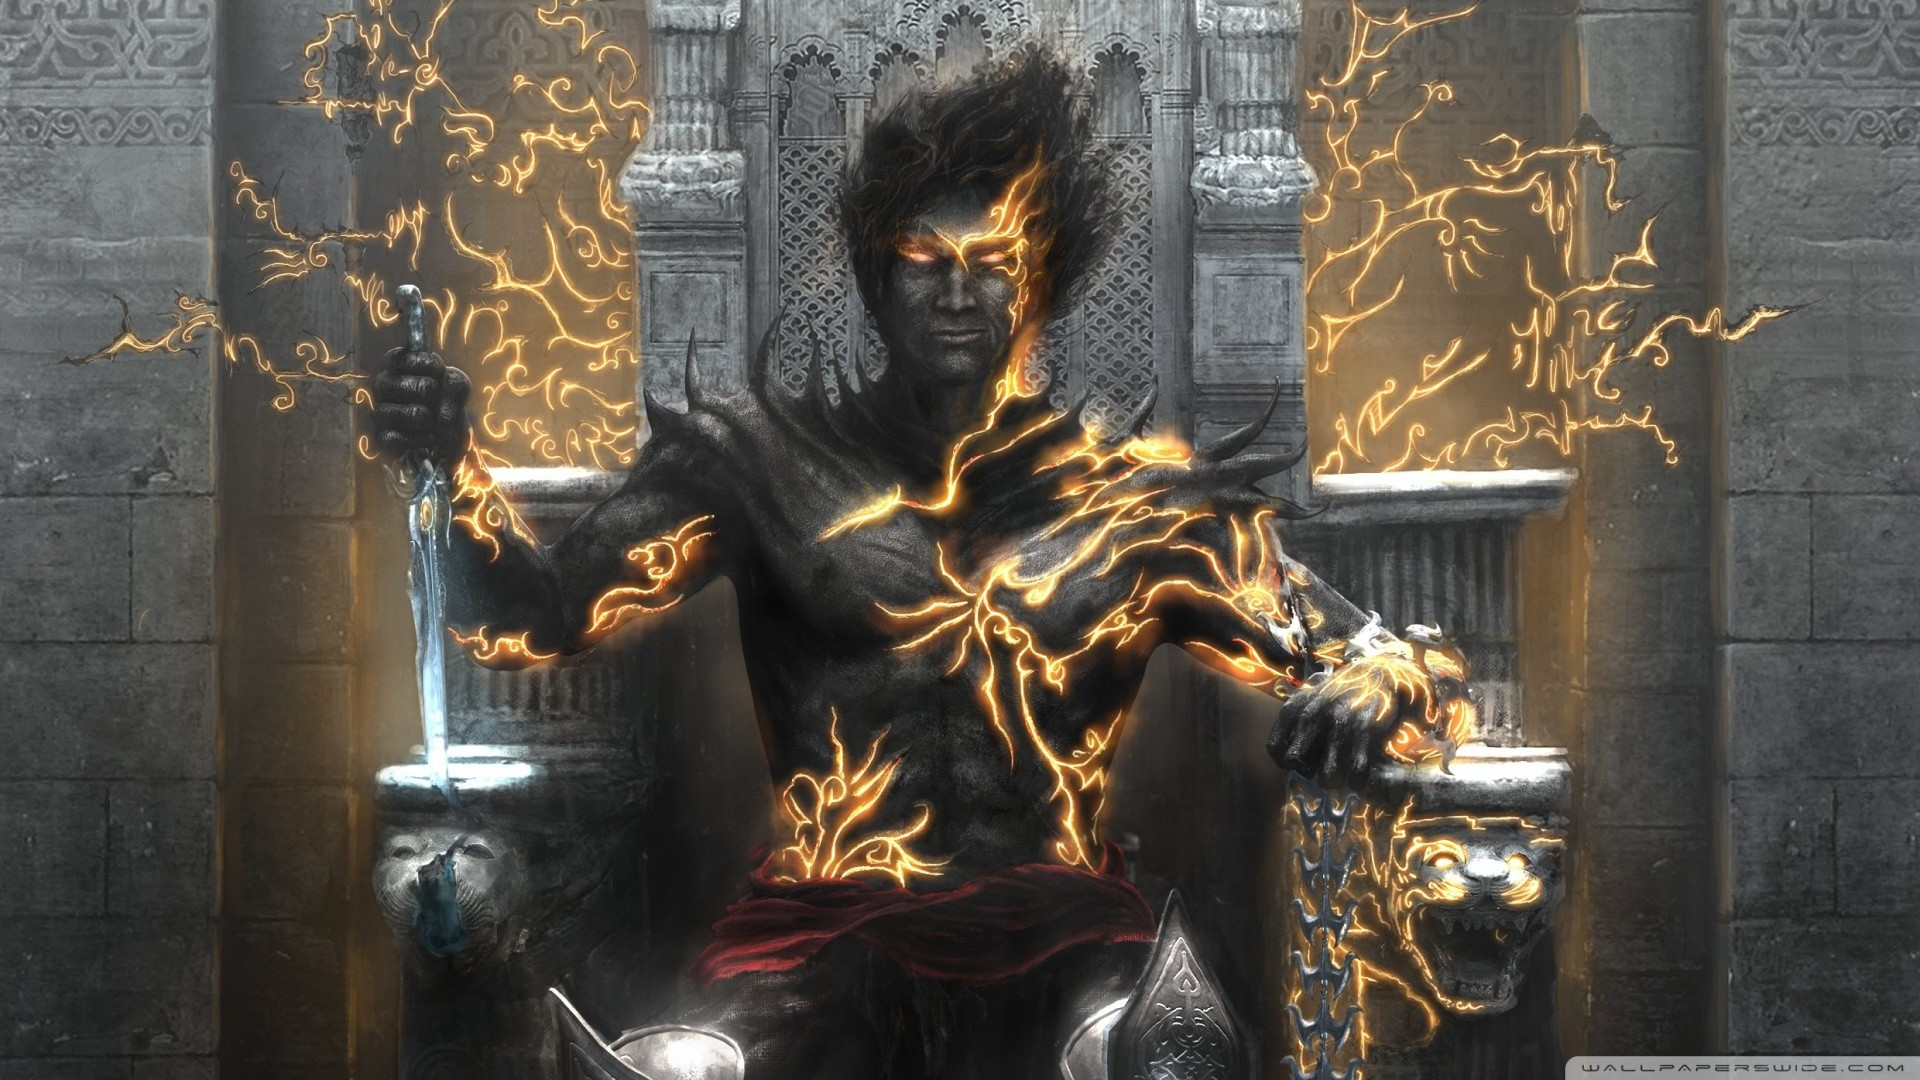 Prince Of Persia The Two Thrones Free Download - Fever of Games